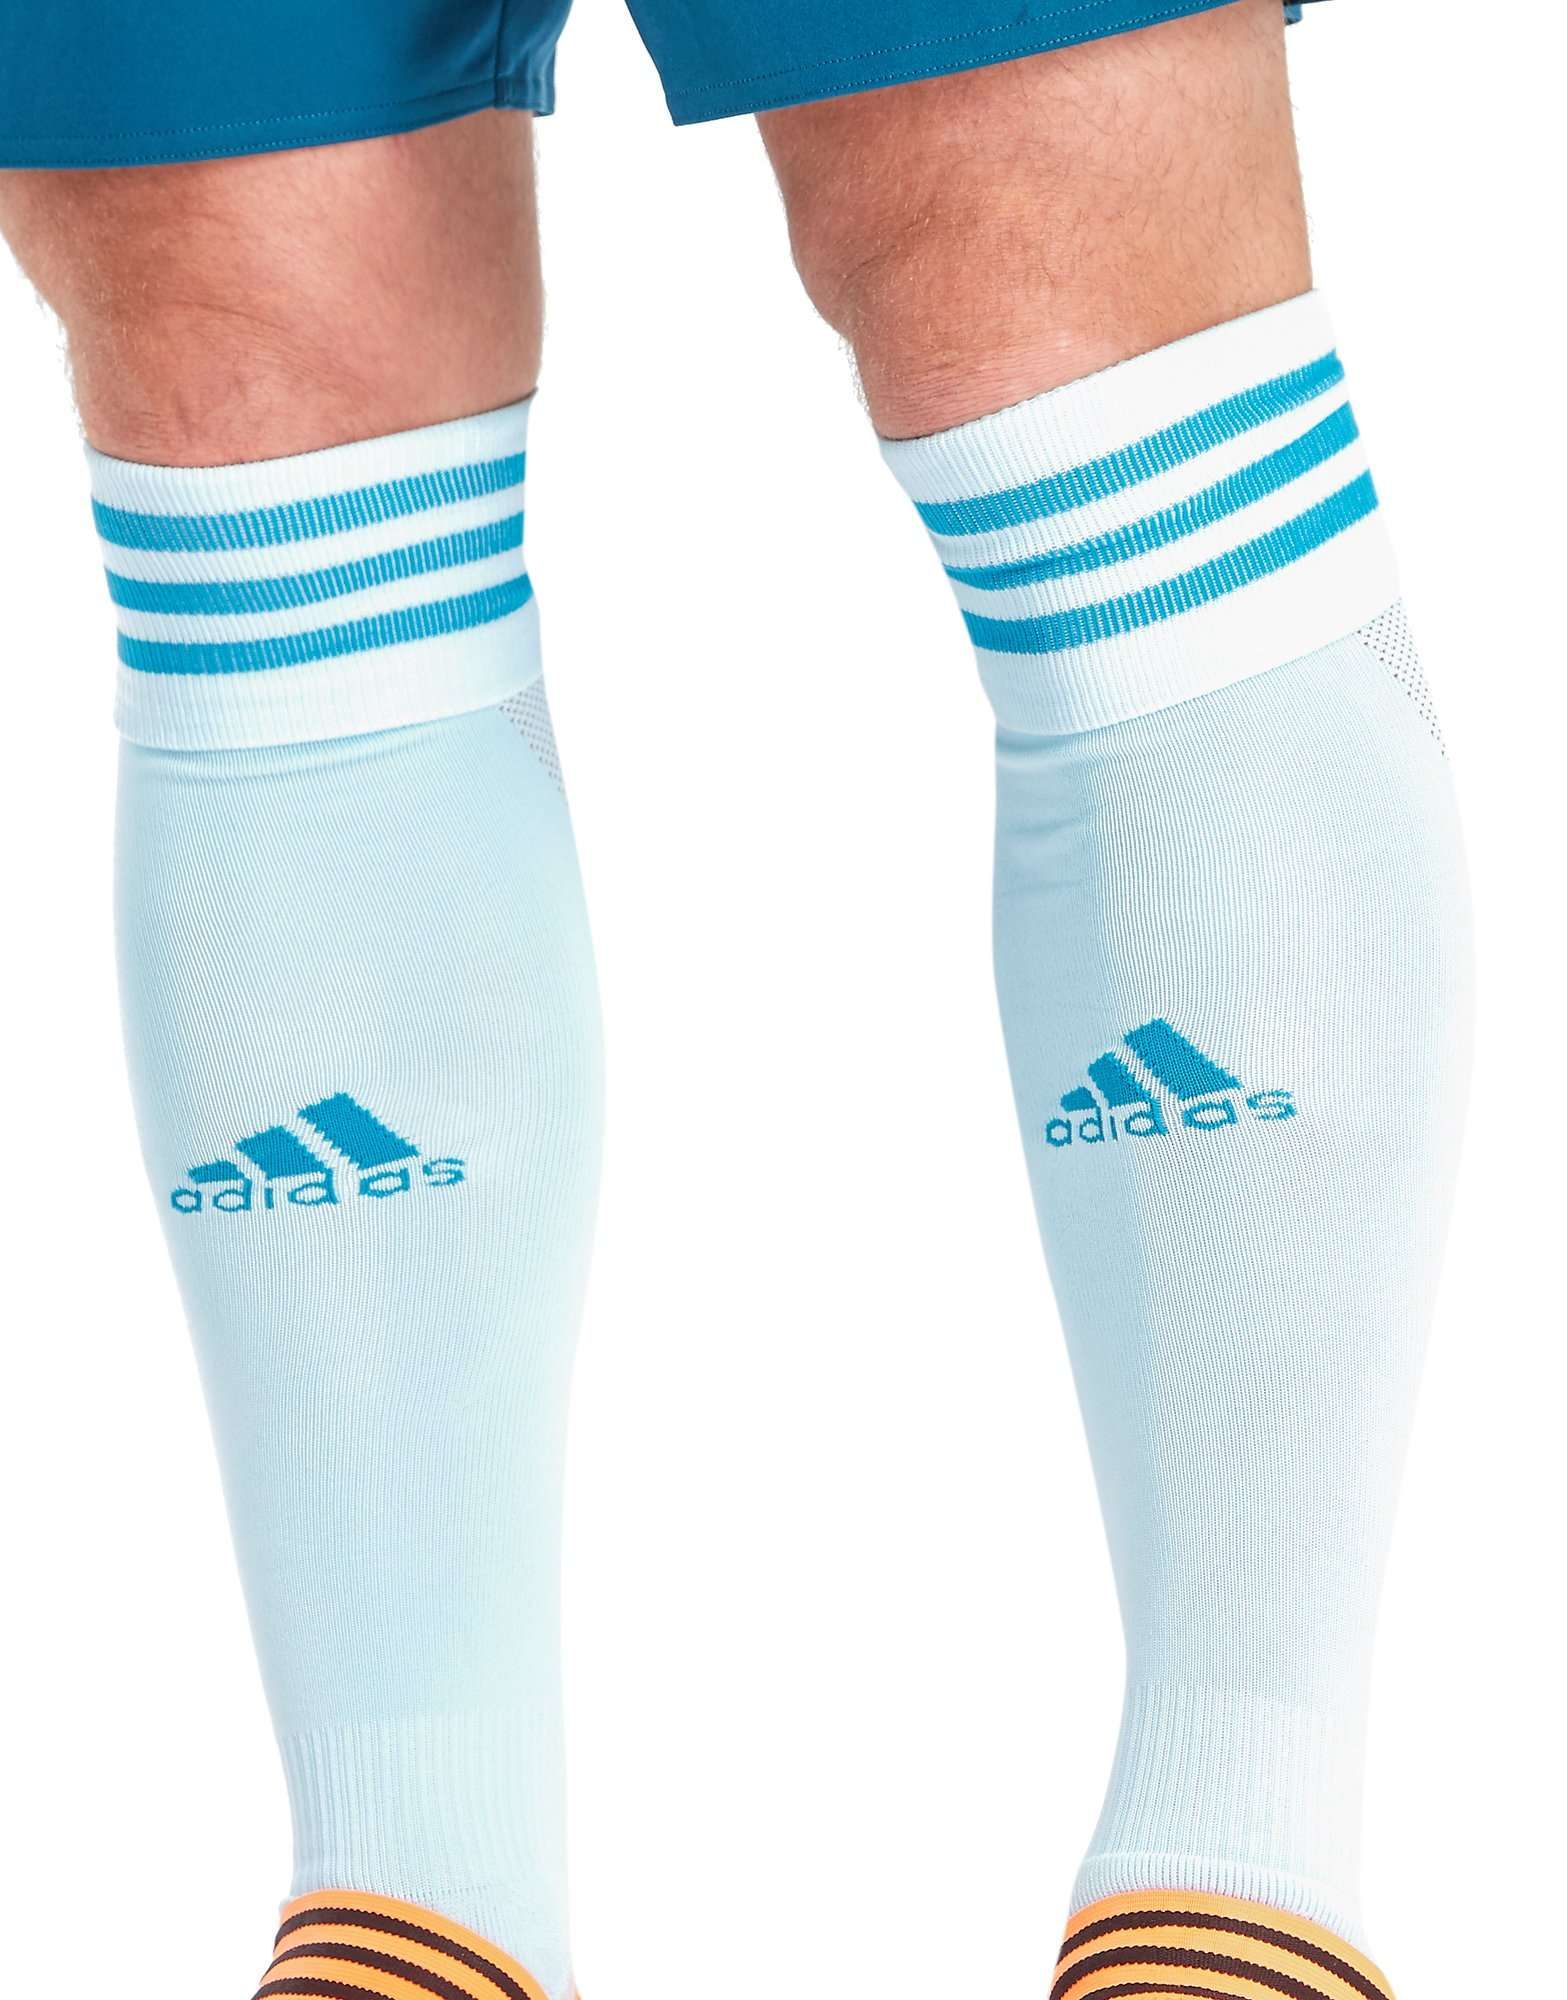 adidas Northern Ireland 2018/19 Away Socks